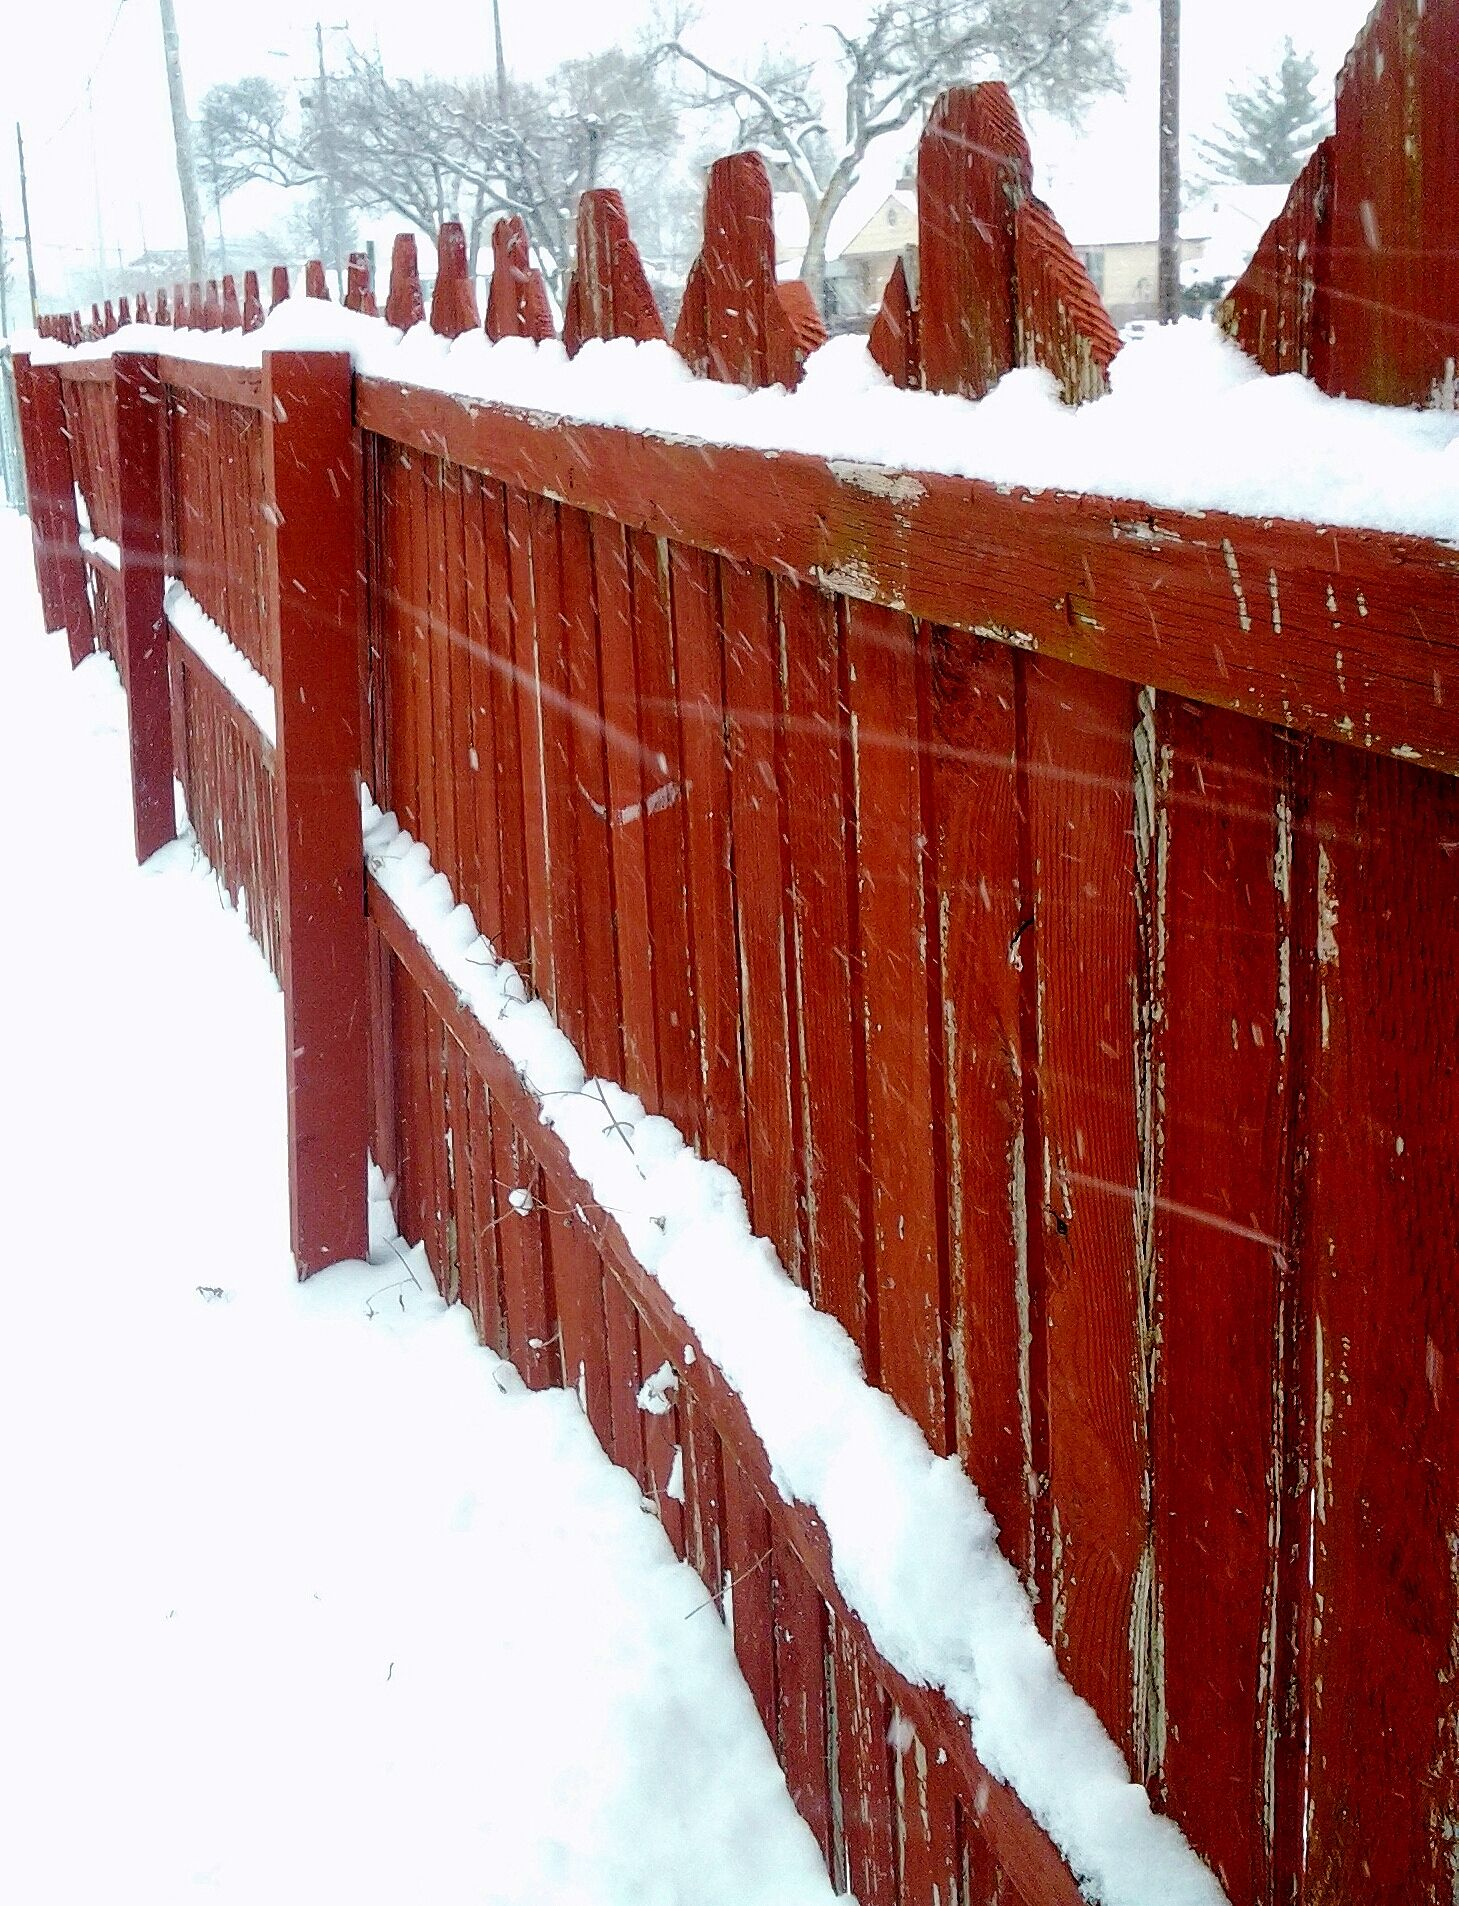 Red Picket Fences Winter Beautiful Studies Christmas Lights Nature Photography